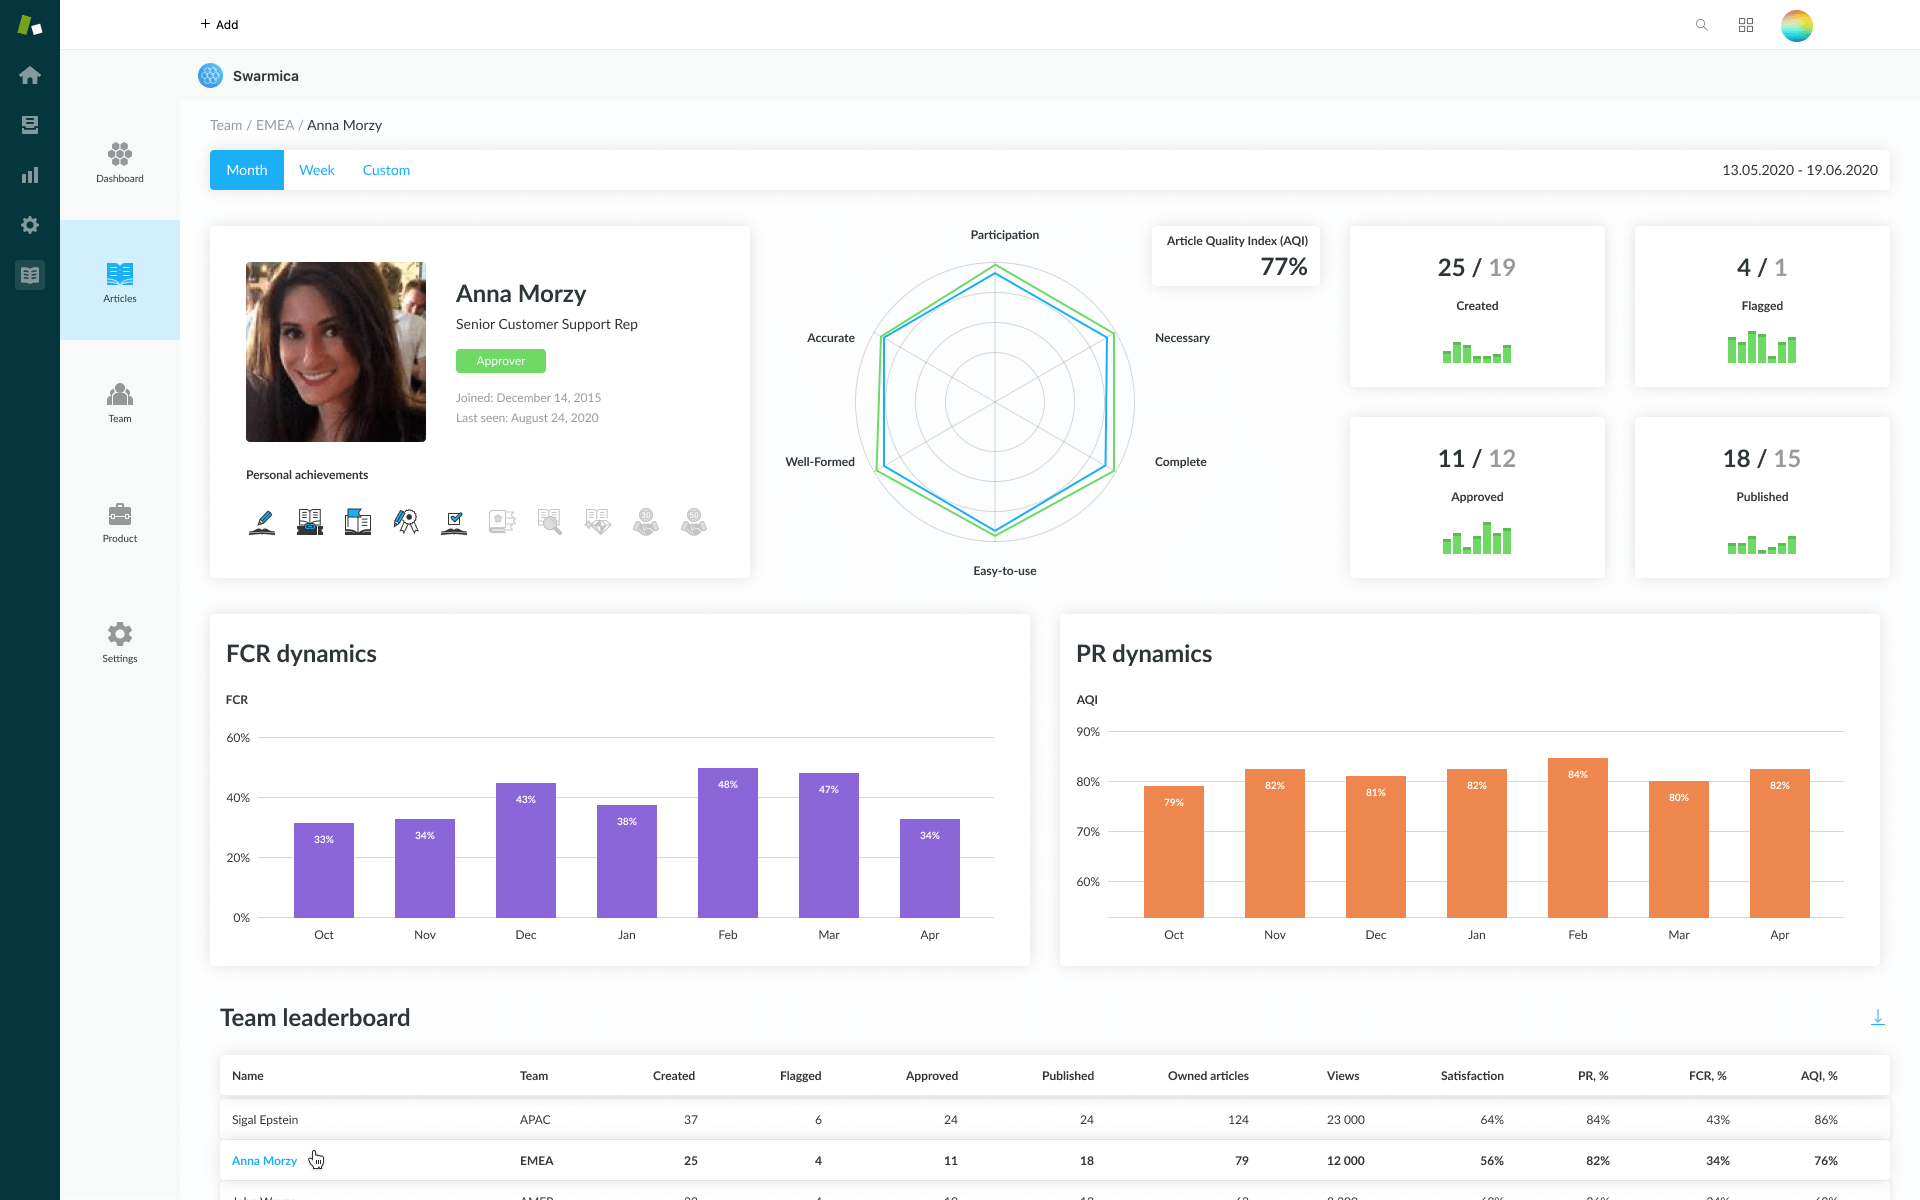 Agent and Team performance at glance.